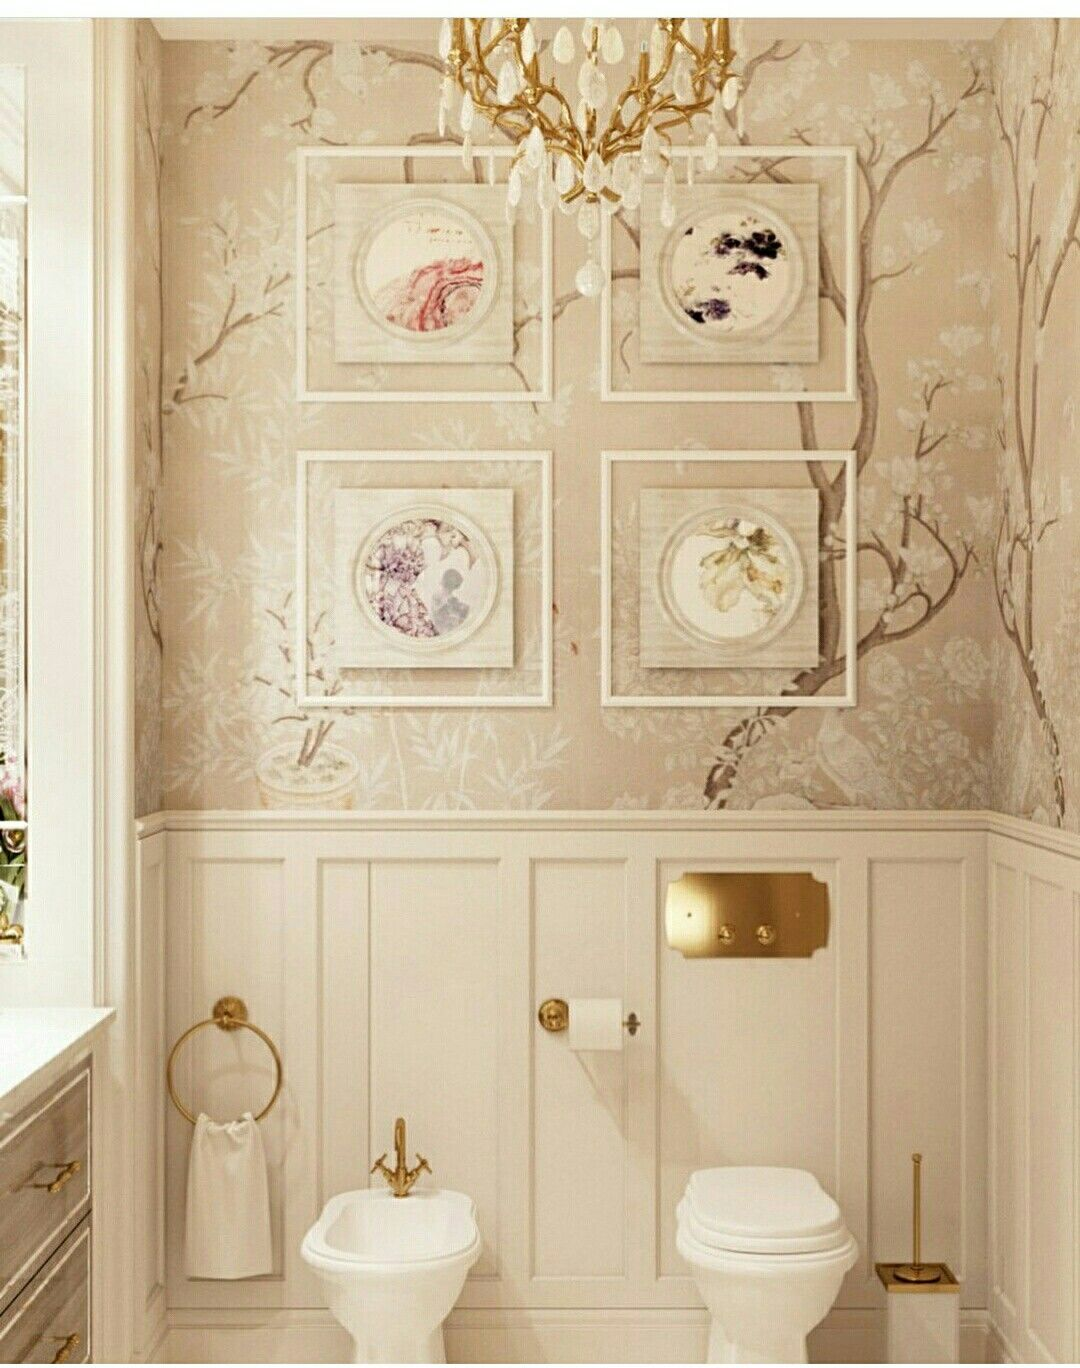 10 Kitchen And Home Decor Items Every 20 Something Needs: LOVE THIS GORGEOUS LOOKING POWDER ROOM, THERE IS JUST THE